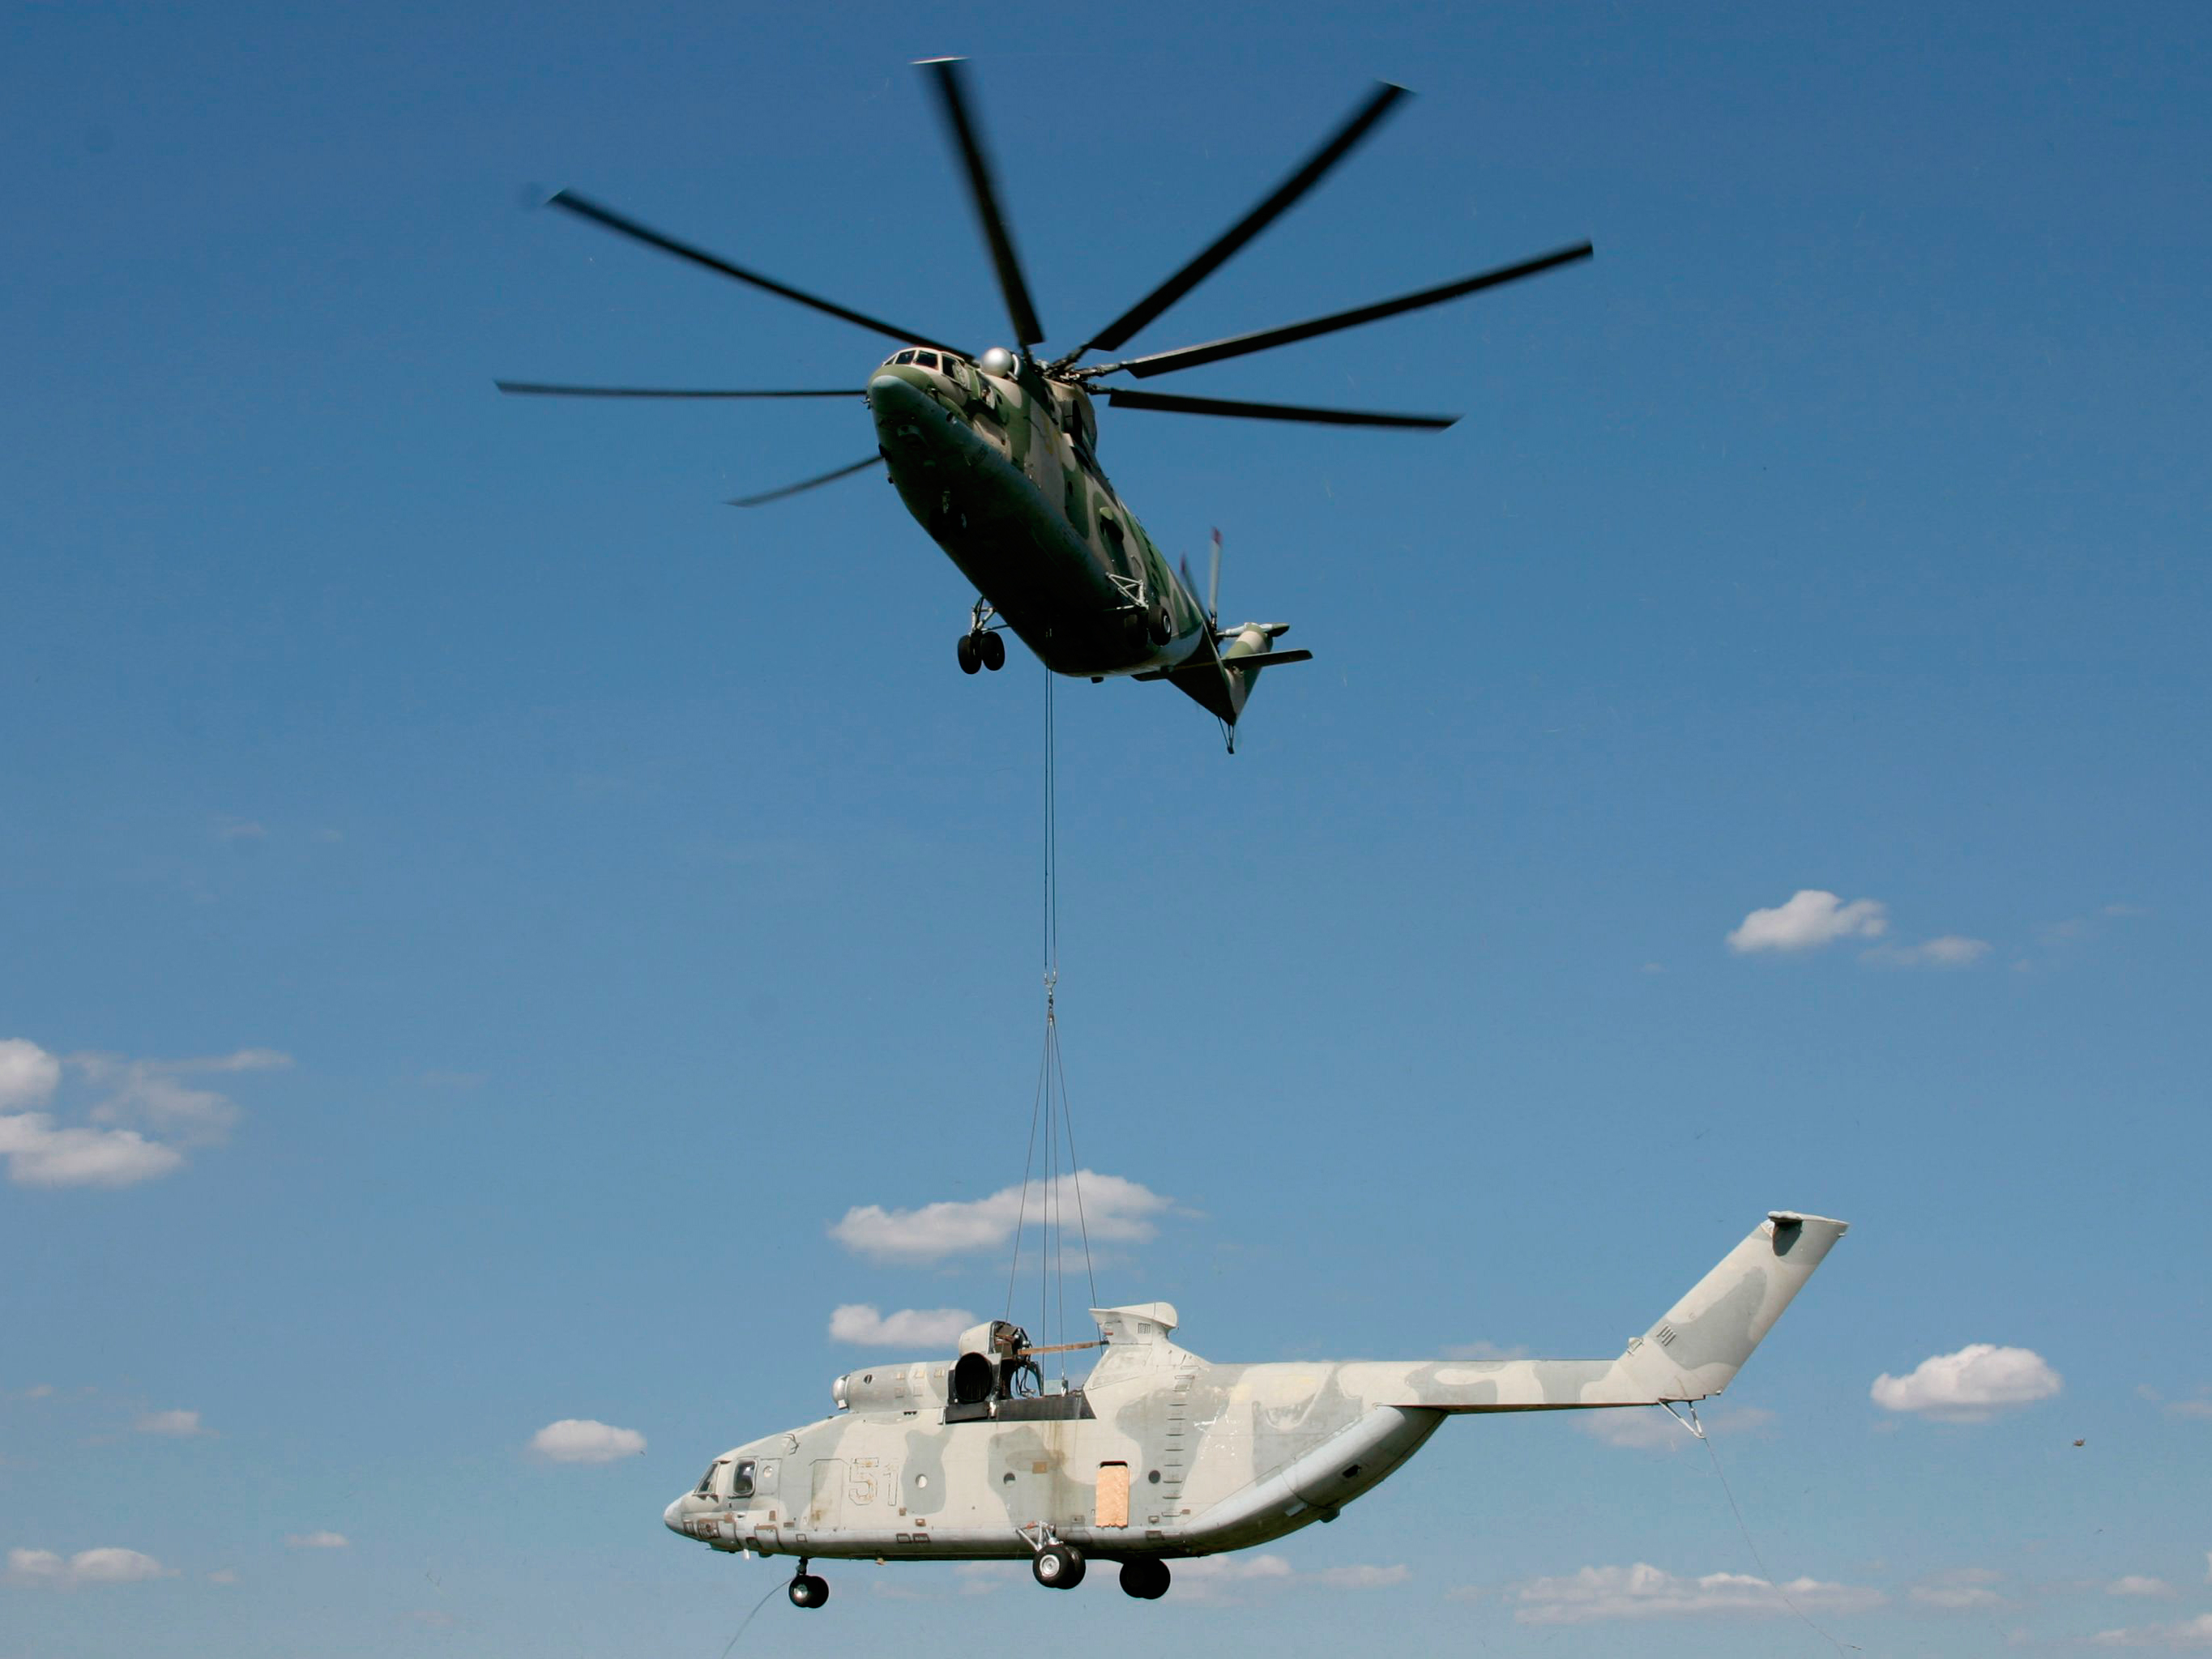 http://rostec.ru/content/files/news/589257.jpg